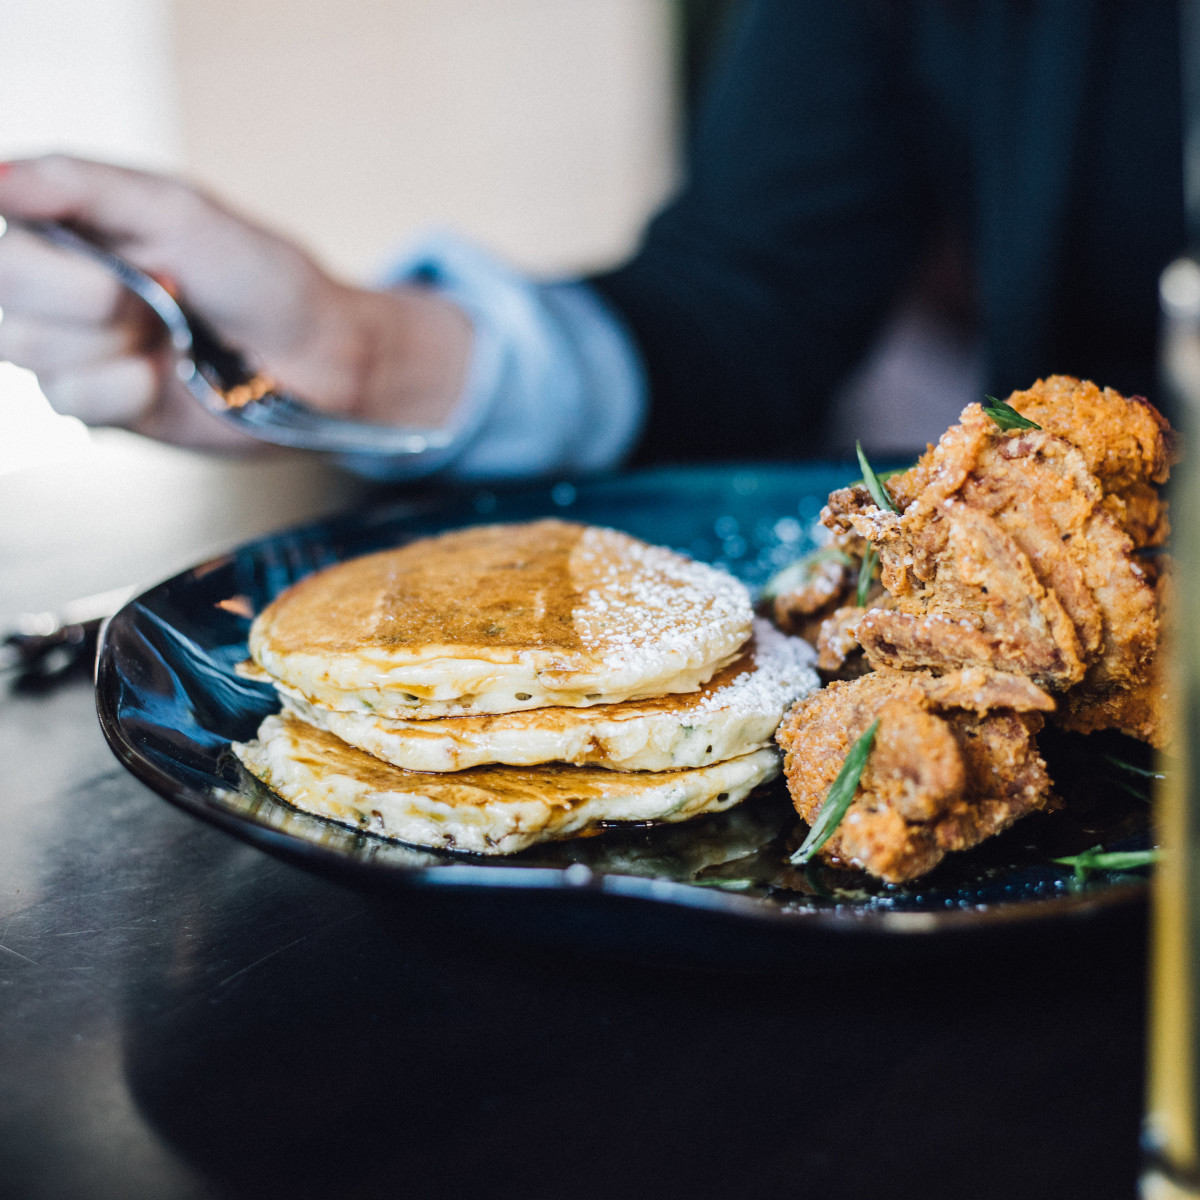 Crispy quail and hot cakes at The General Public